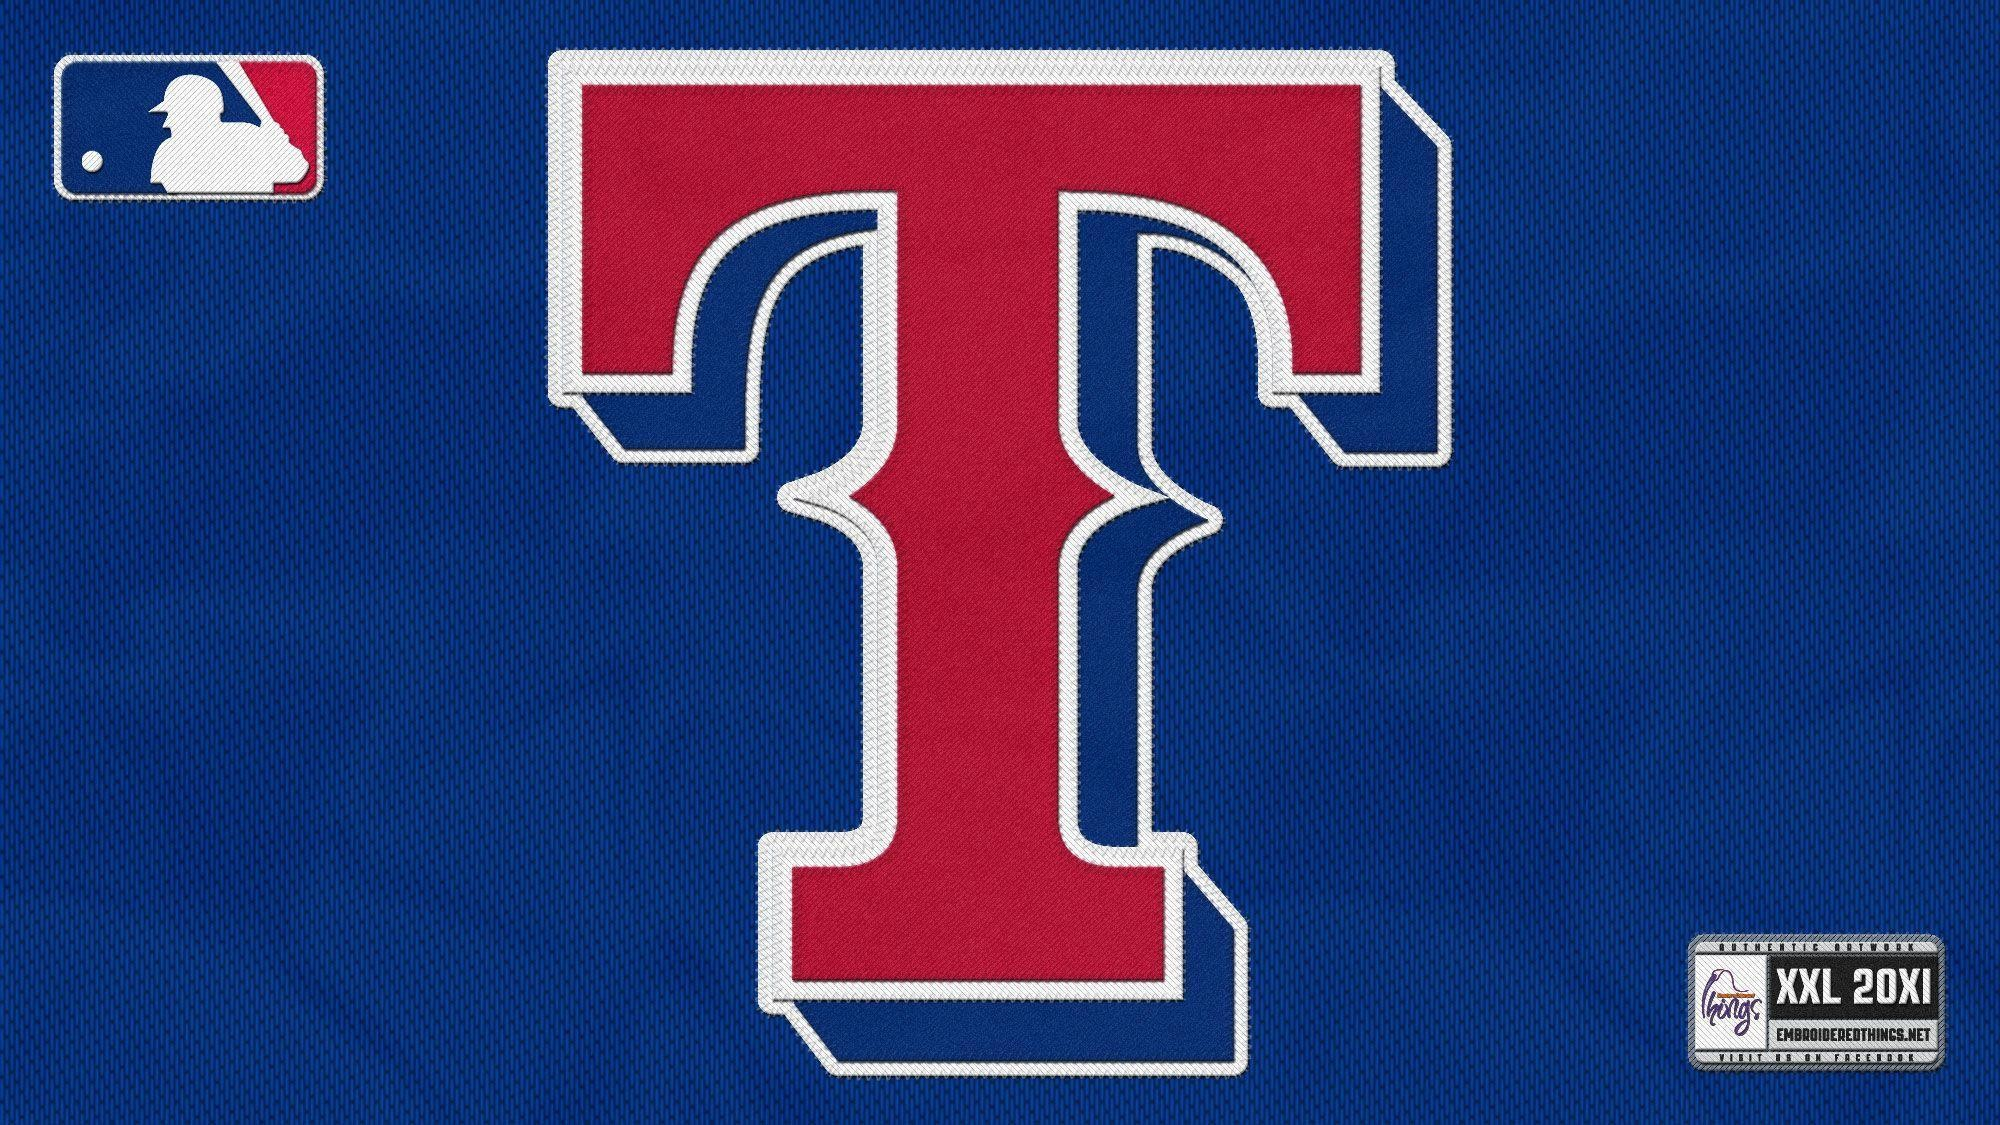 2000x1125 Texas Rangers Logo Wallpaper - WallpaperSafari